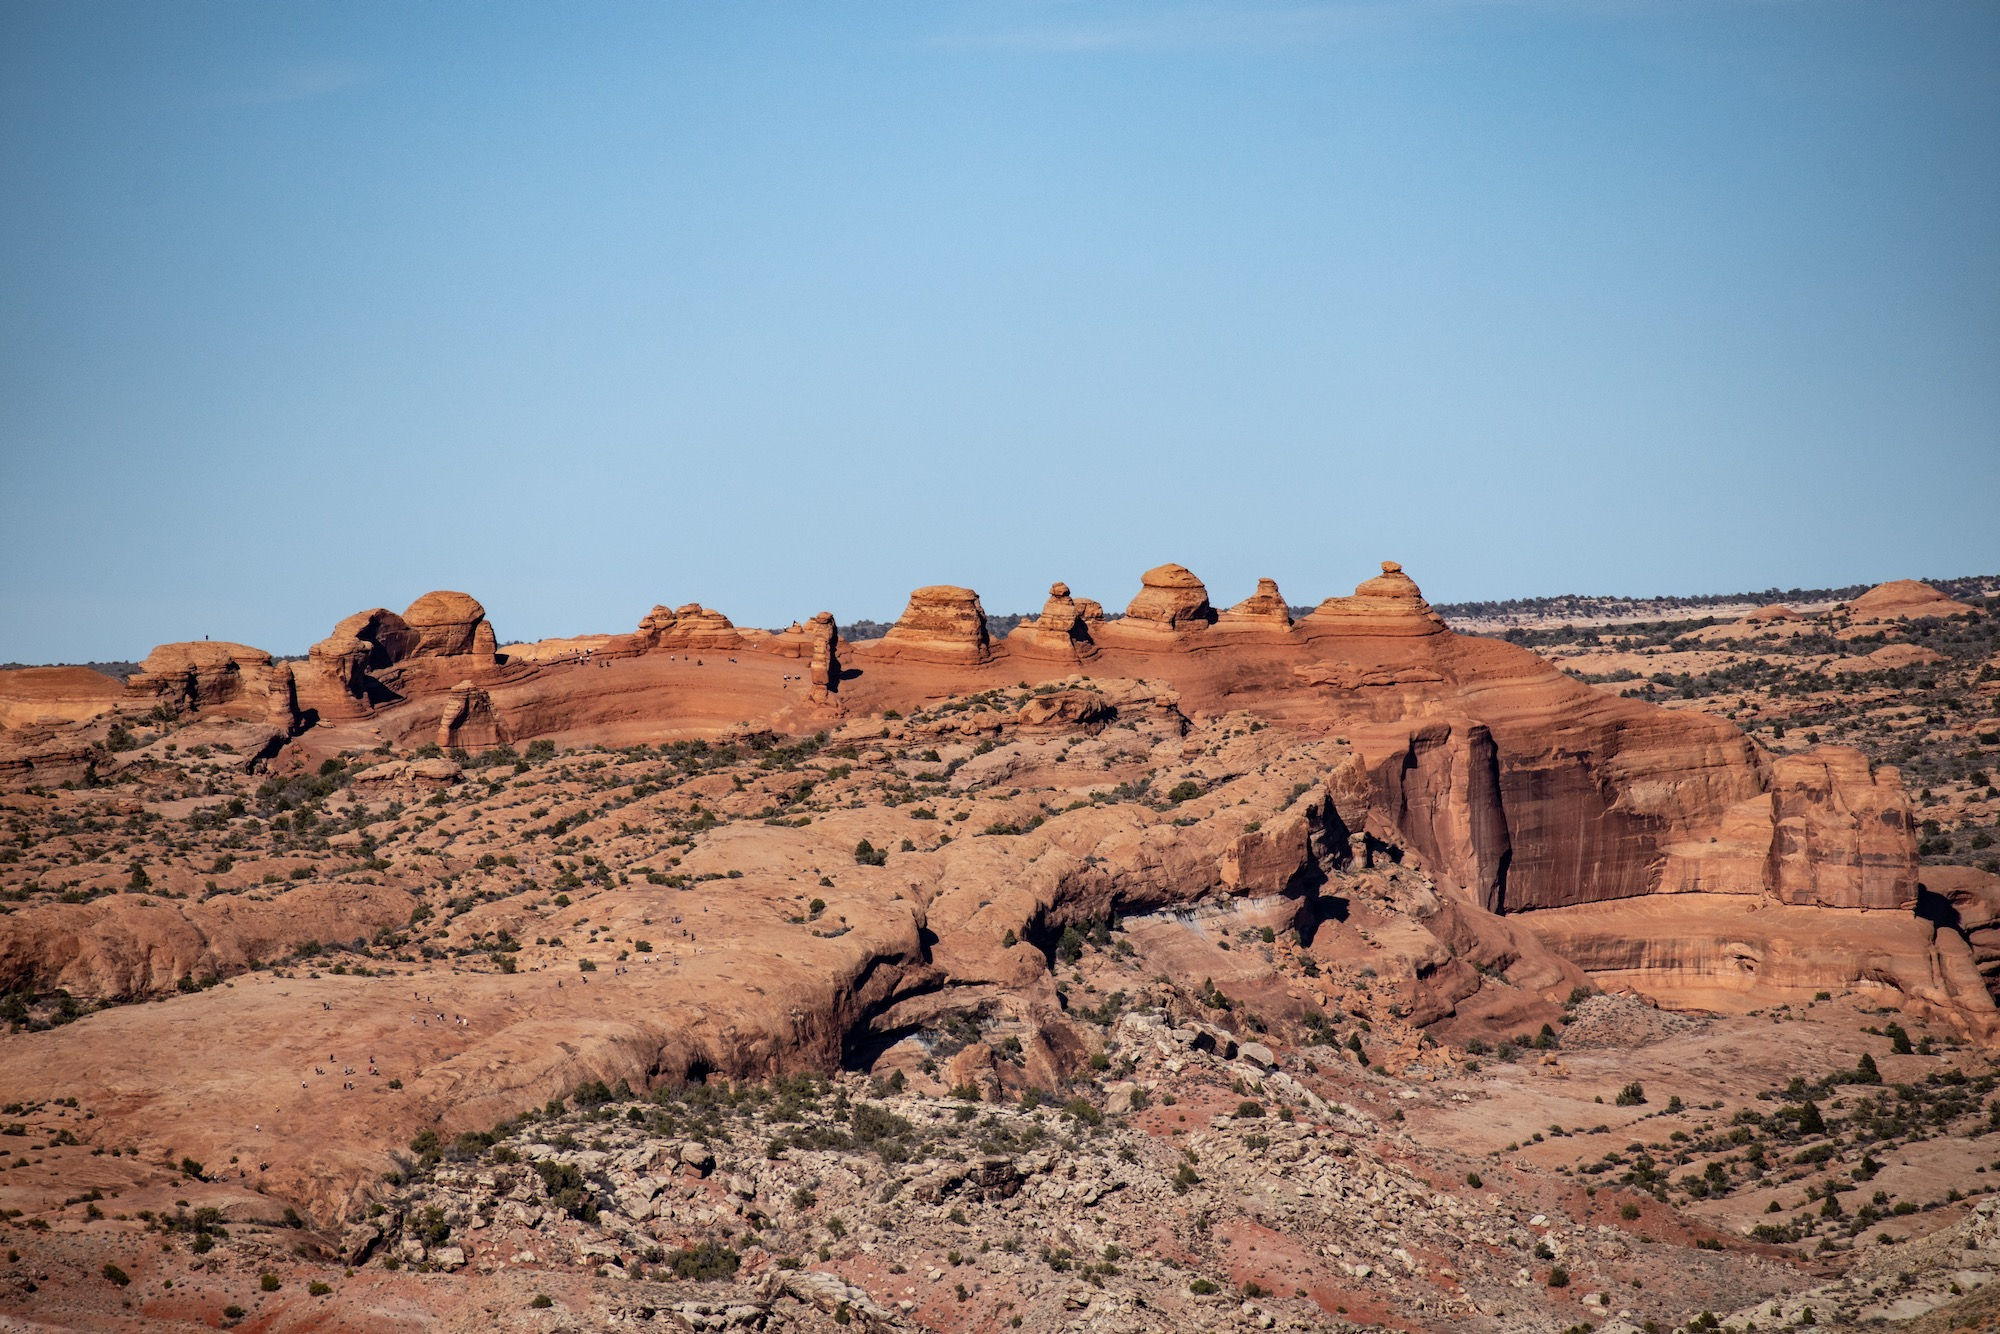 This is a unique view of the famous Delicate Arch from a distance. It appears as the thin fin of rock just left of center here.